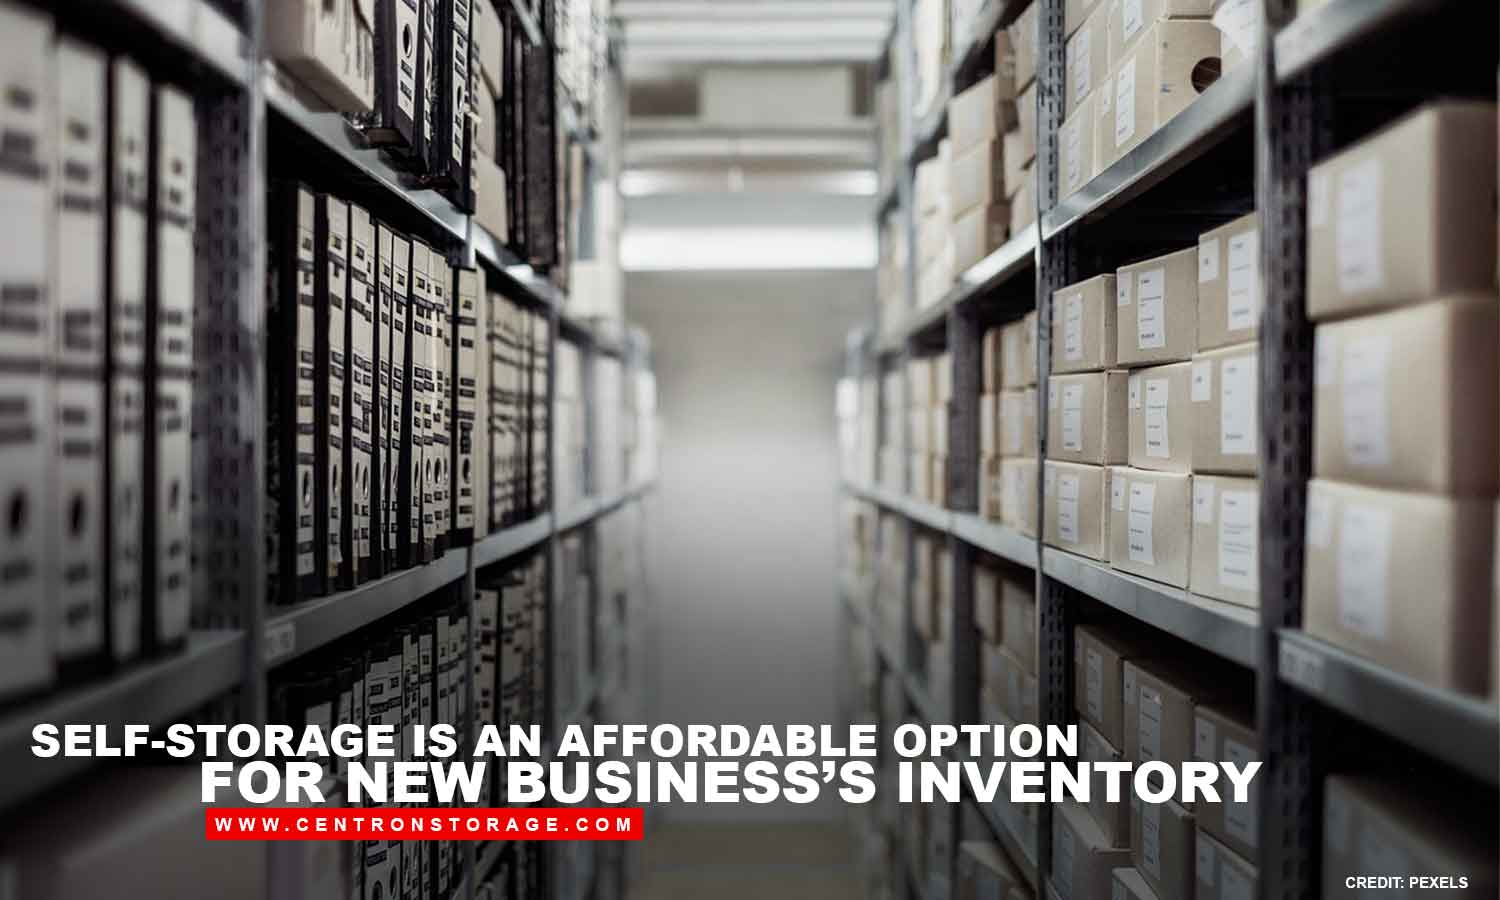 Self-storage is an affordable option for new business's inventory